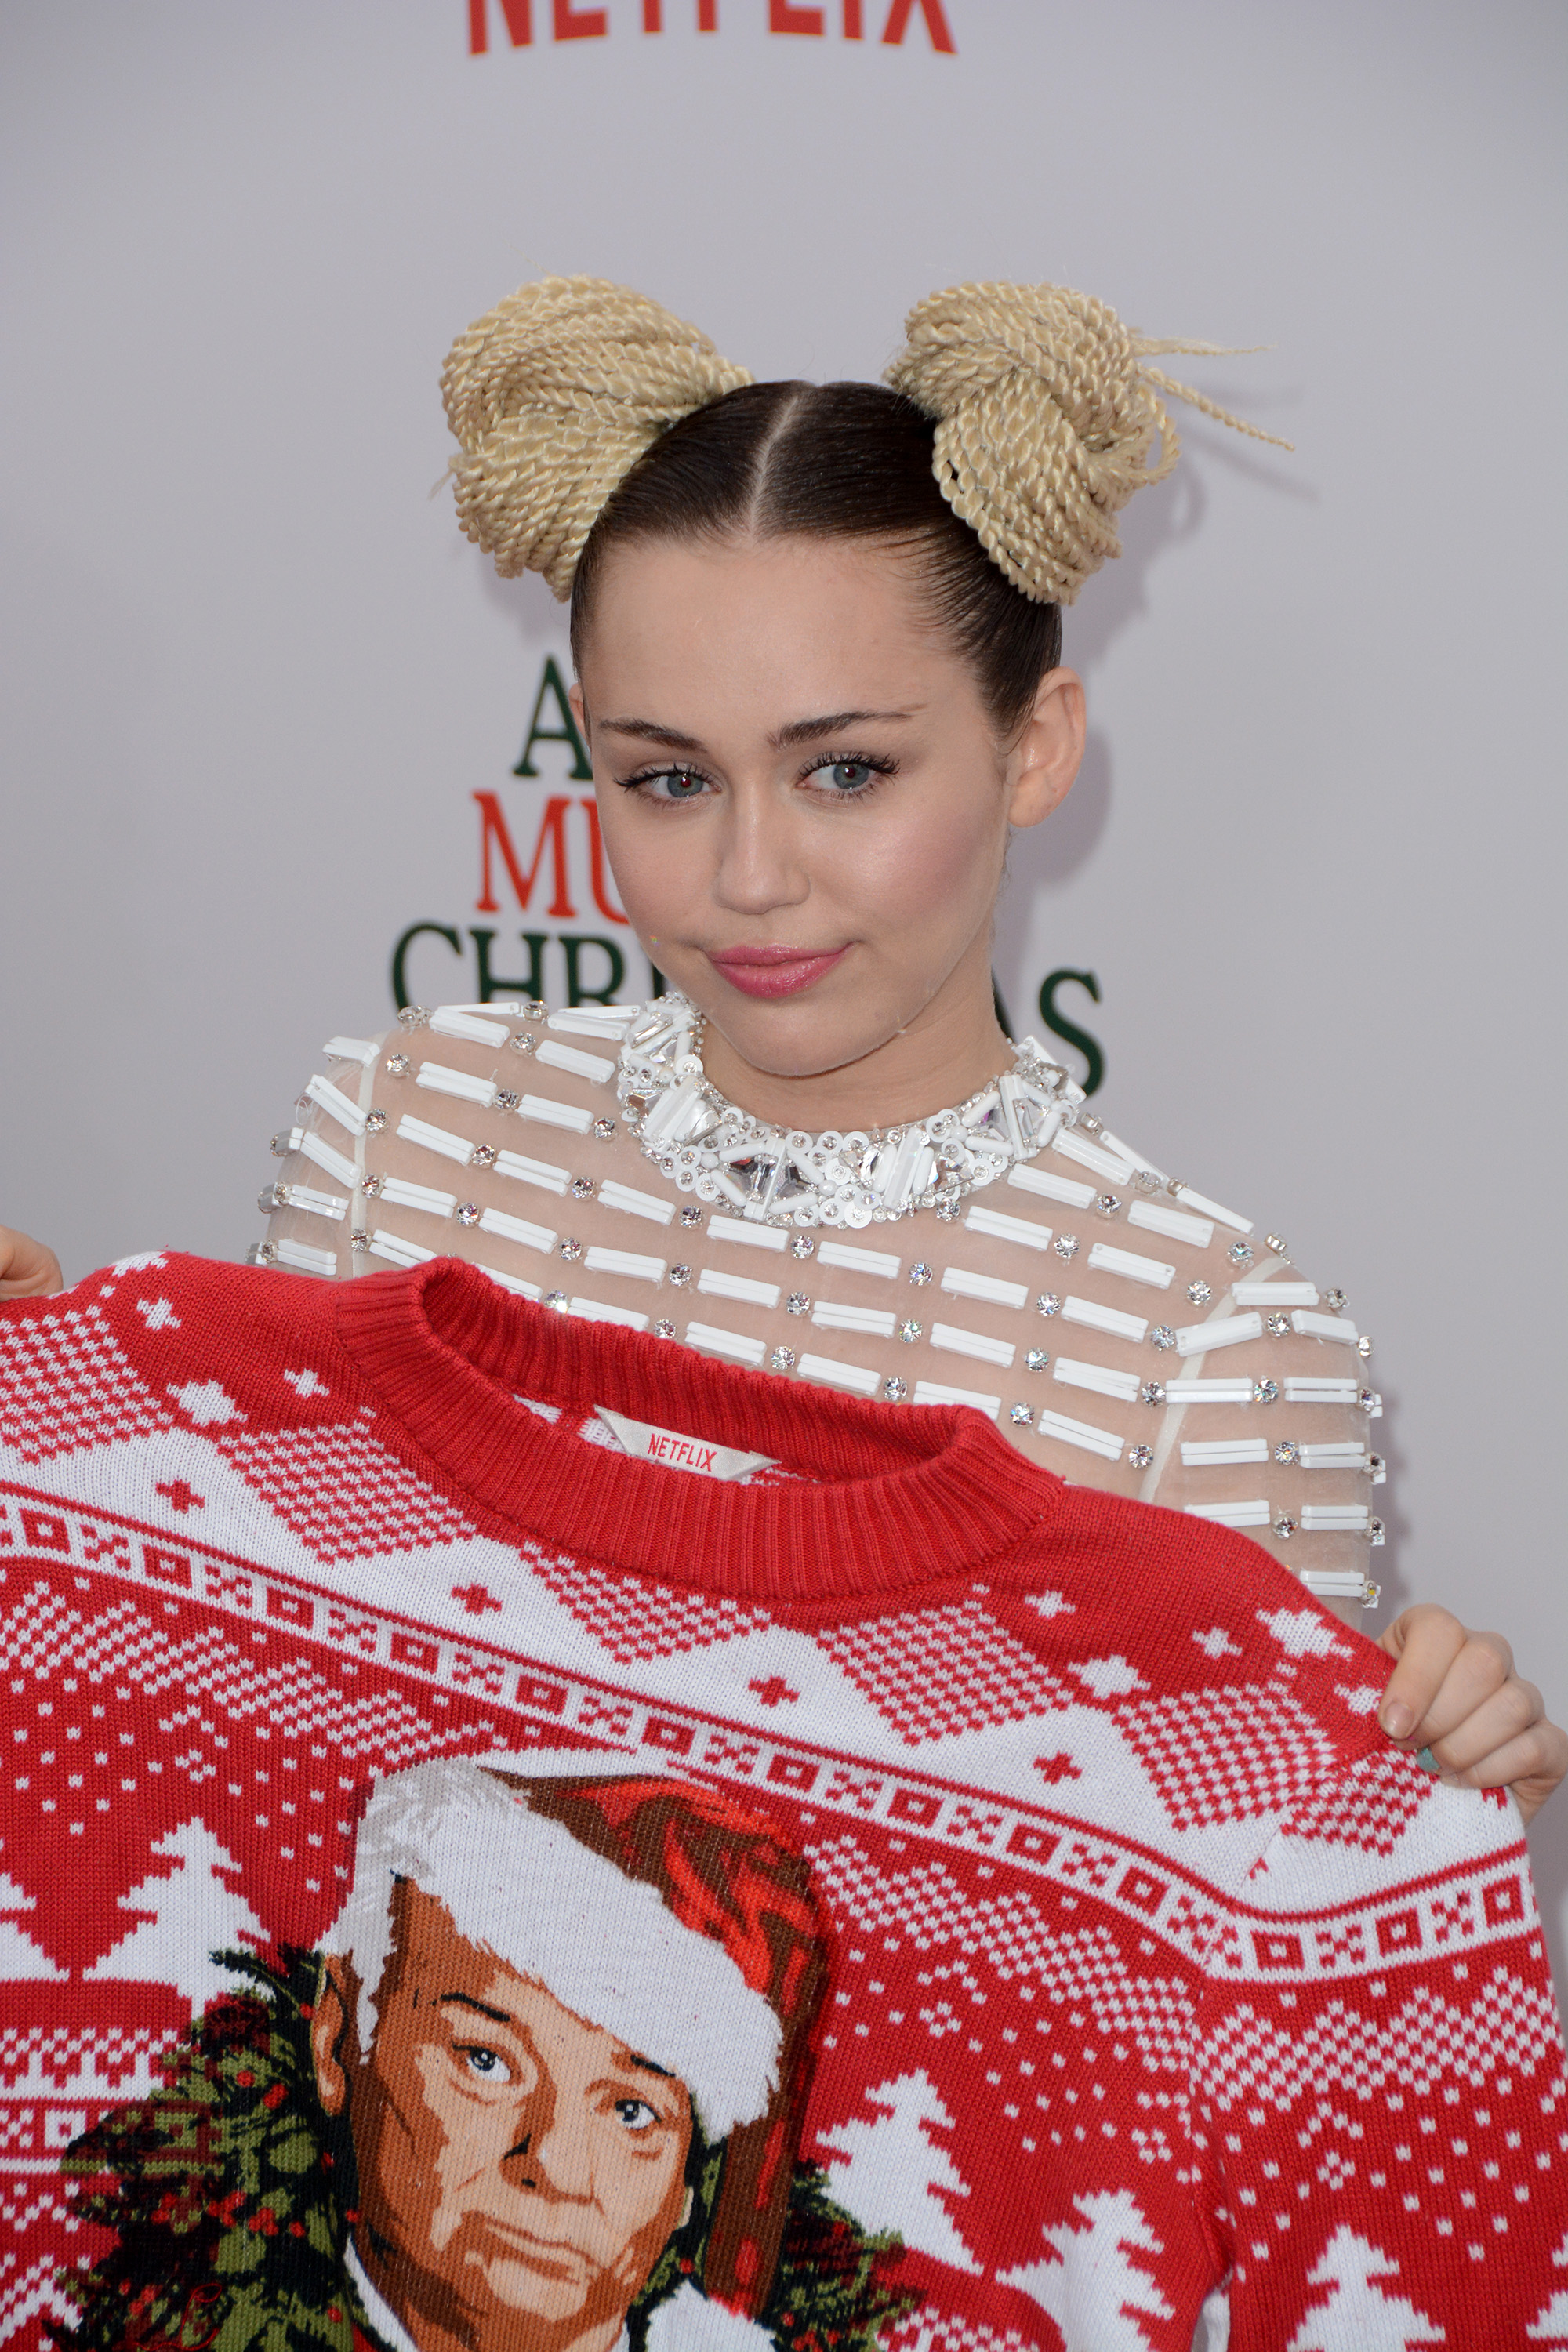 Miley Cyrus Leaves Red Carpet: Must-Read Details & Quotes